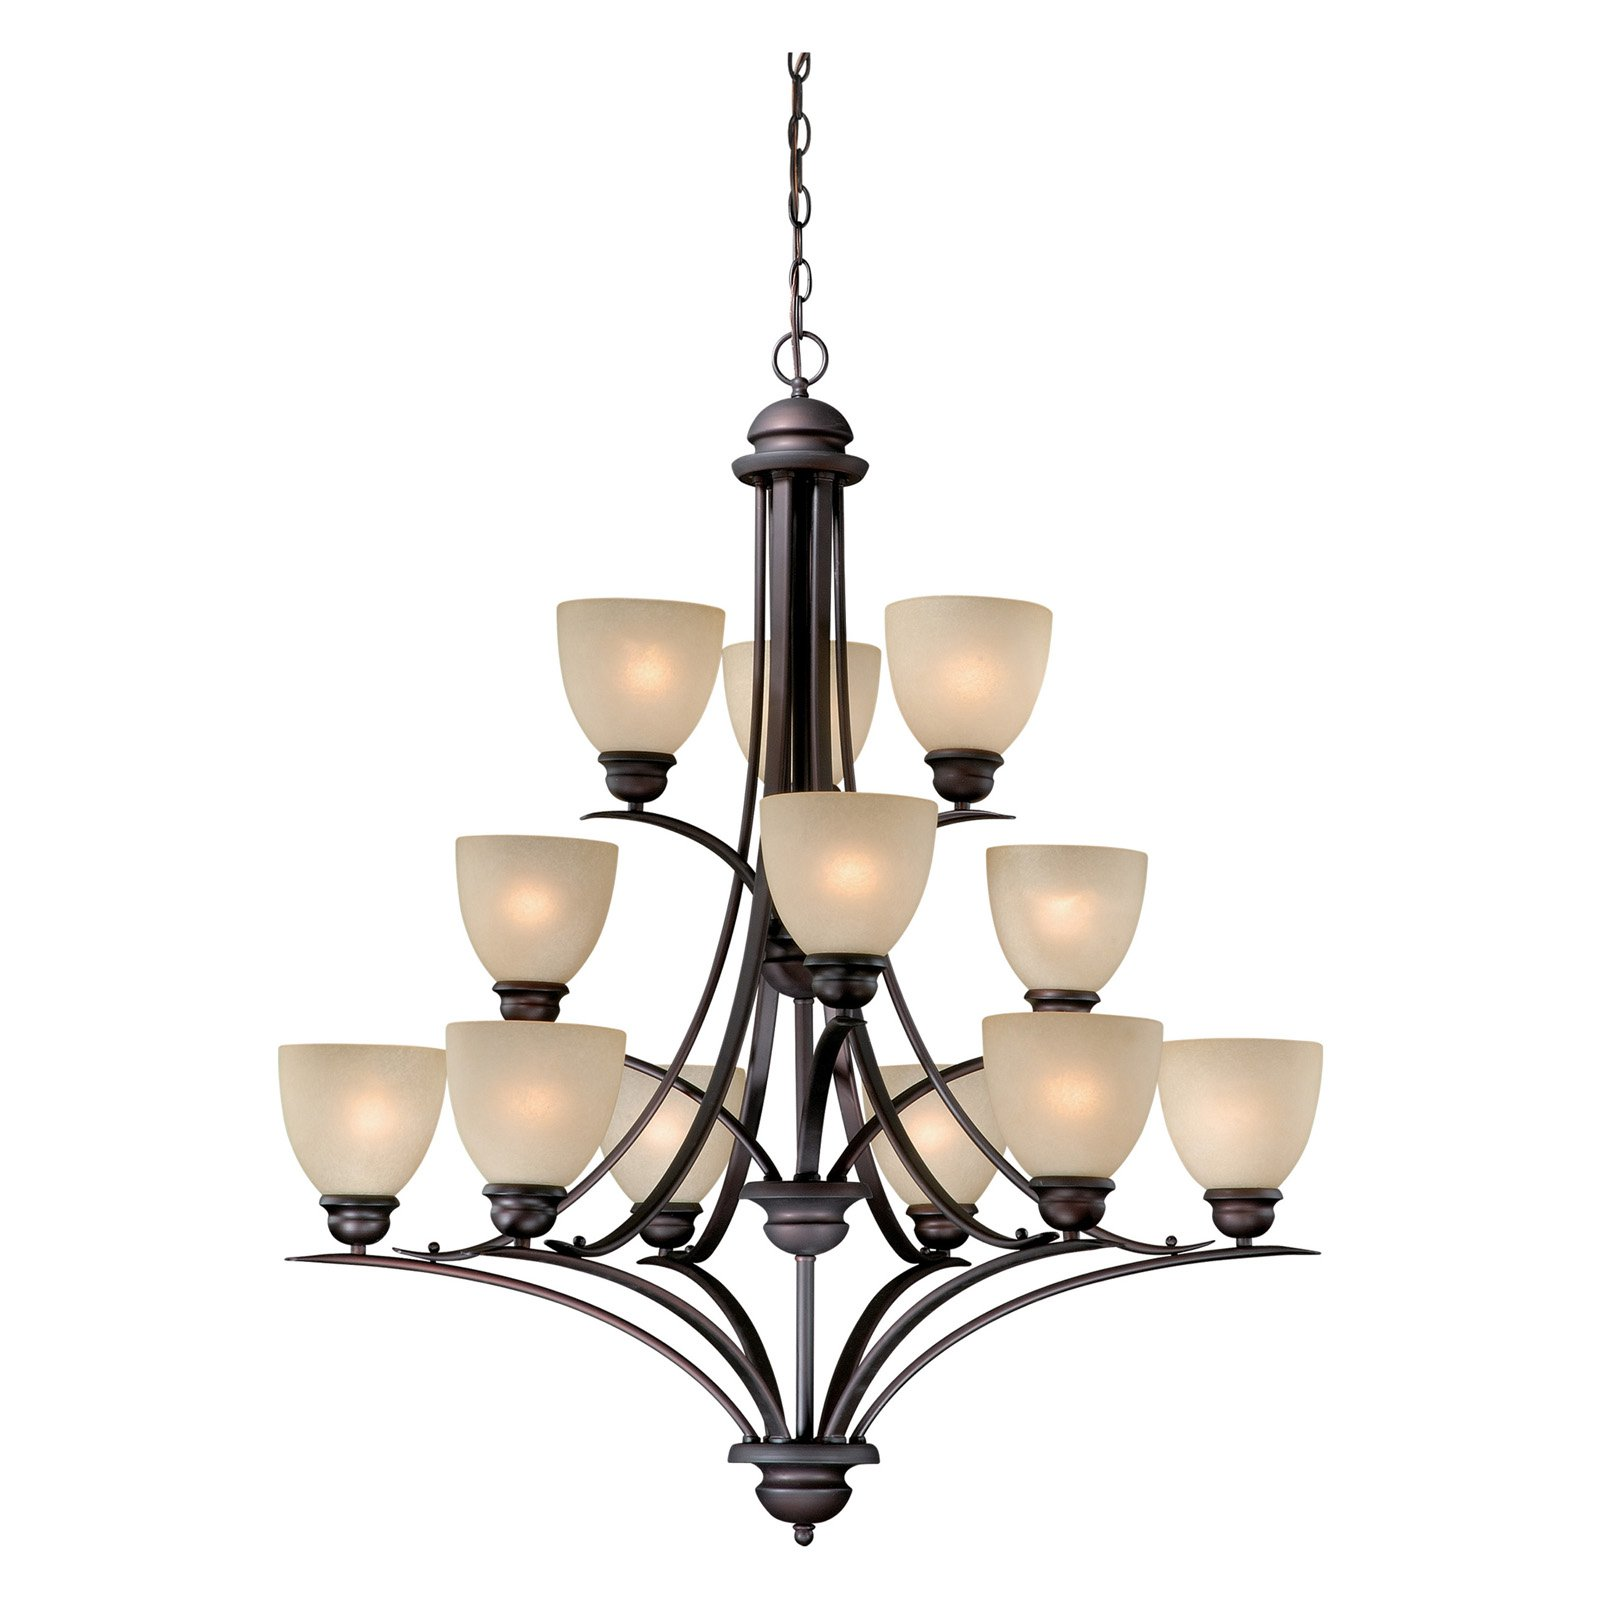 Vaxcel Lighting Avalon AL-CHU012 Chandelier